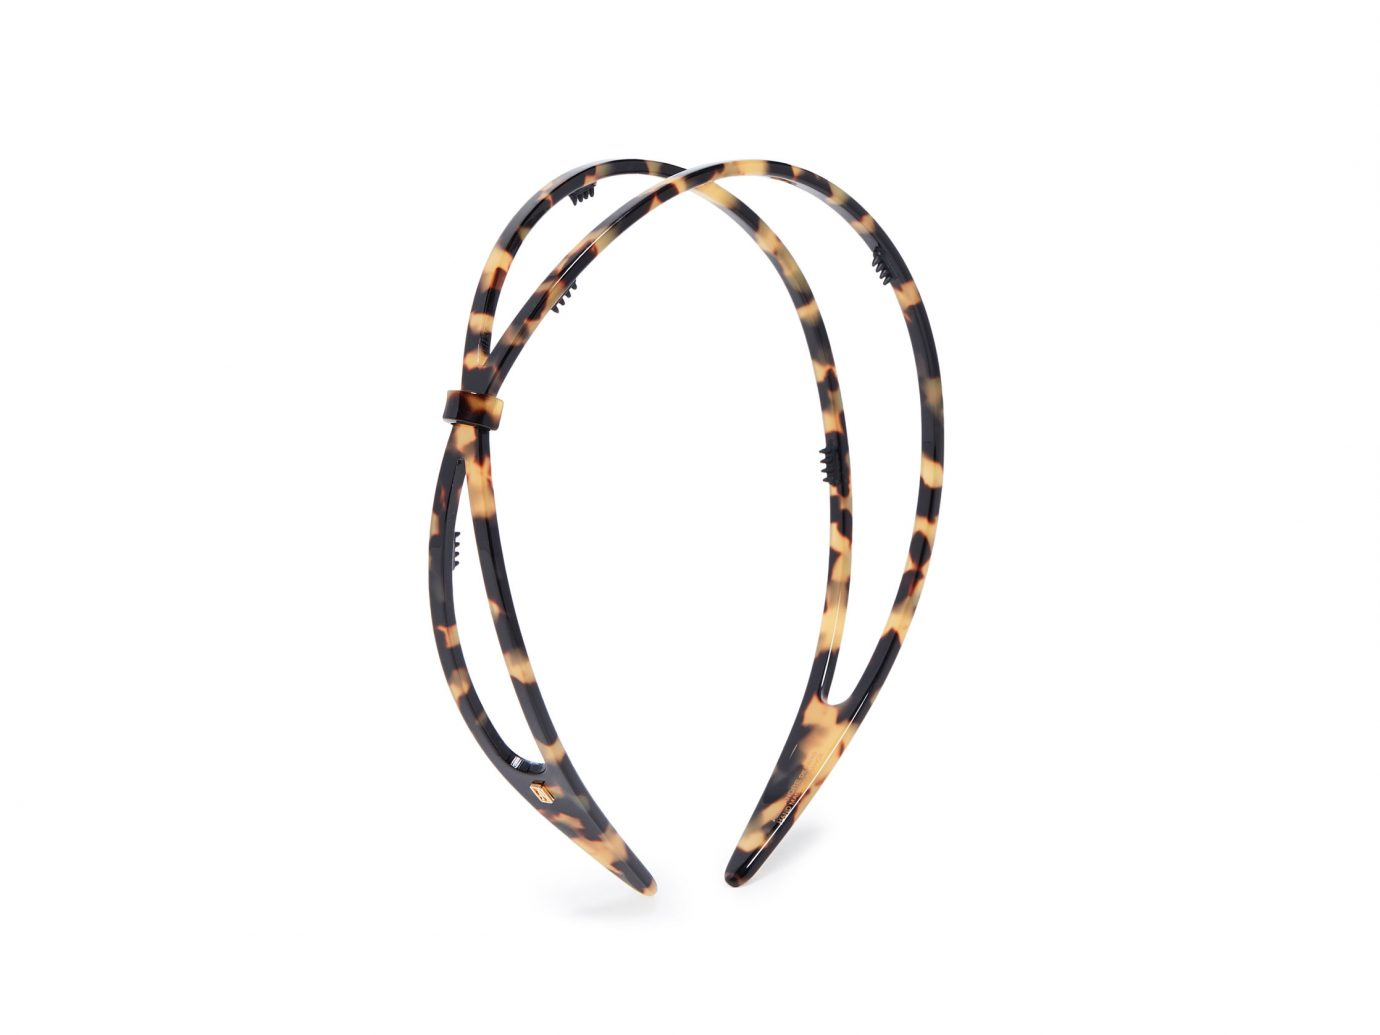 Alexandre de Paris Hard Headband